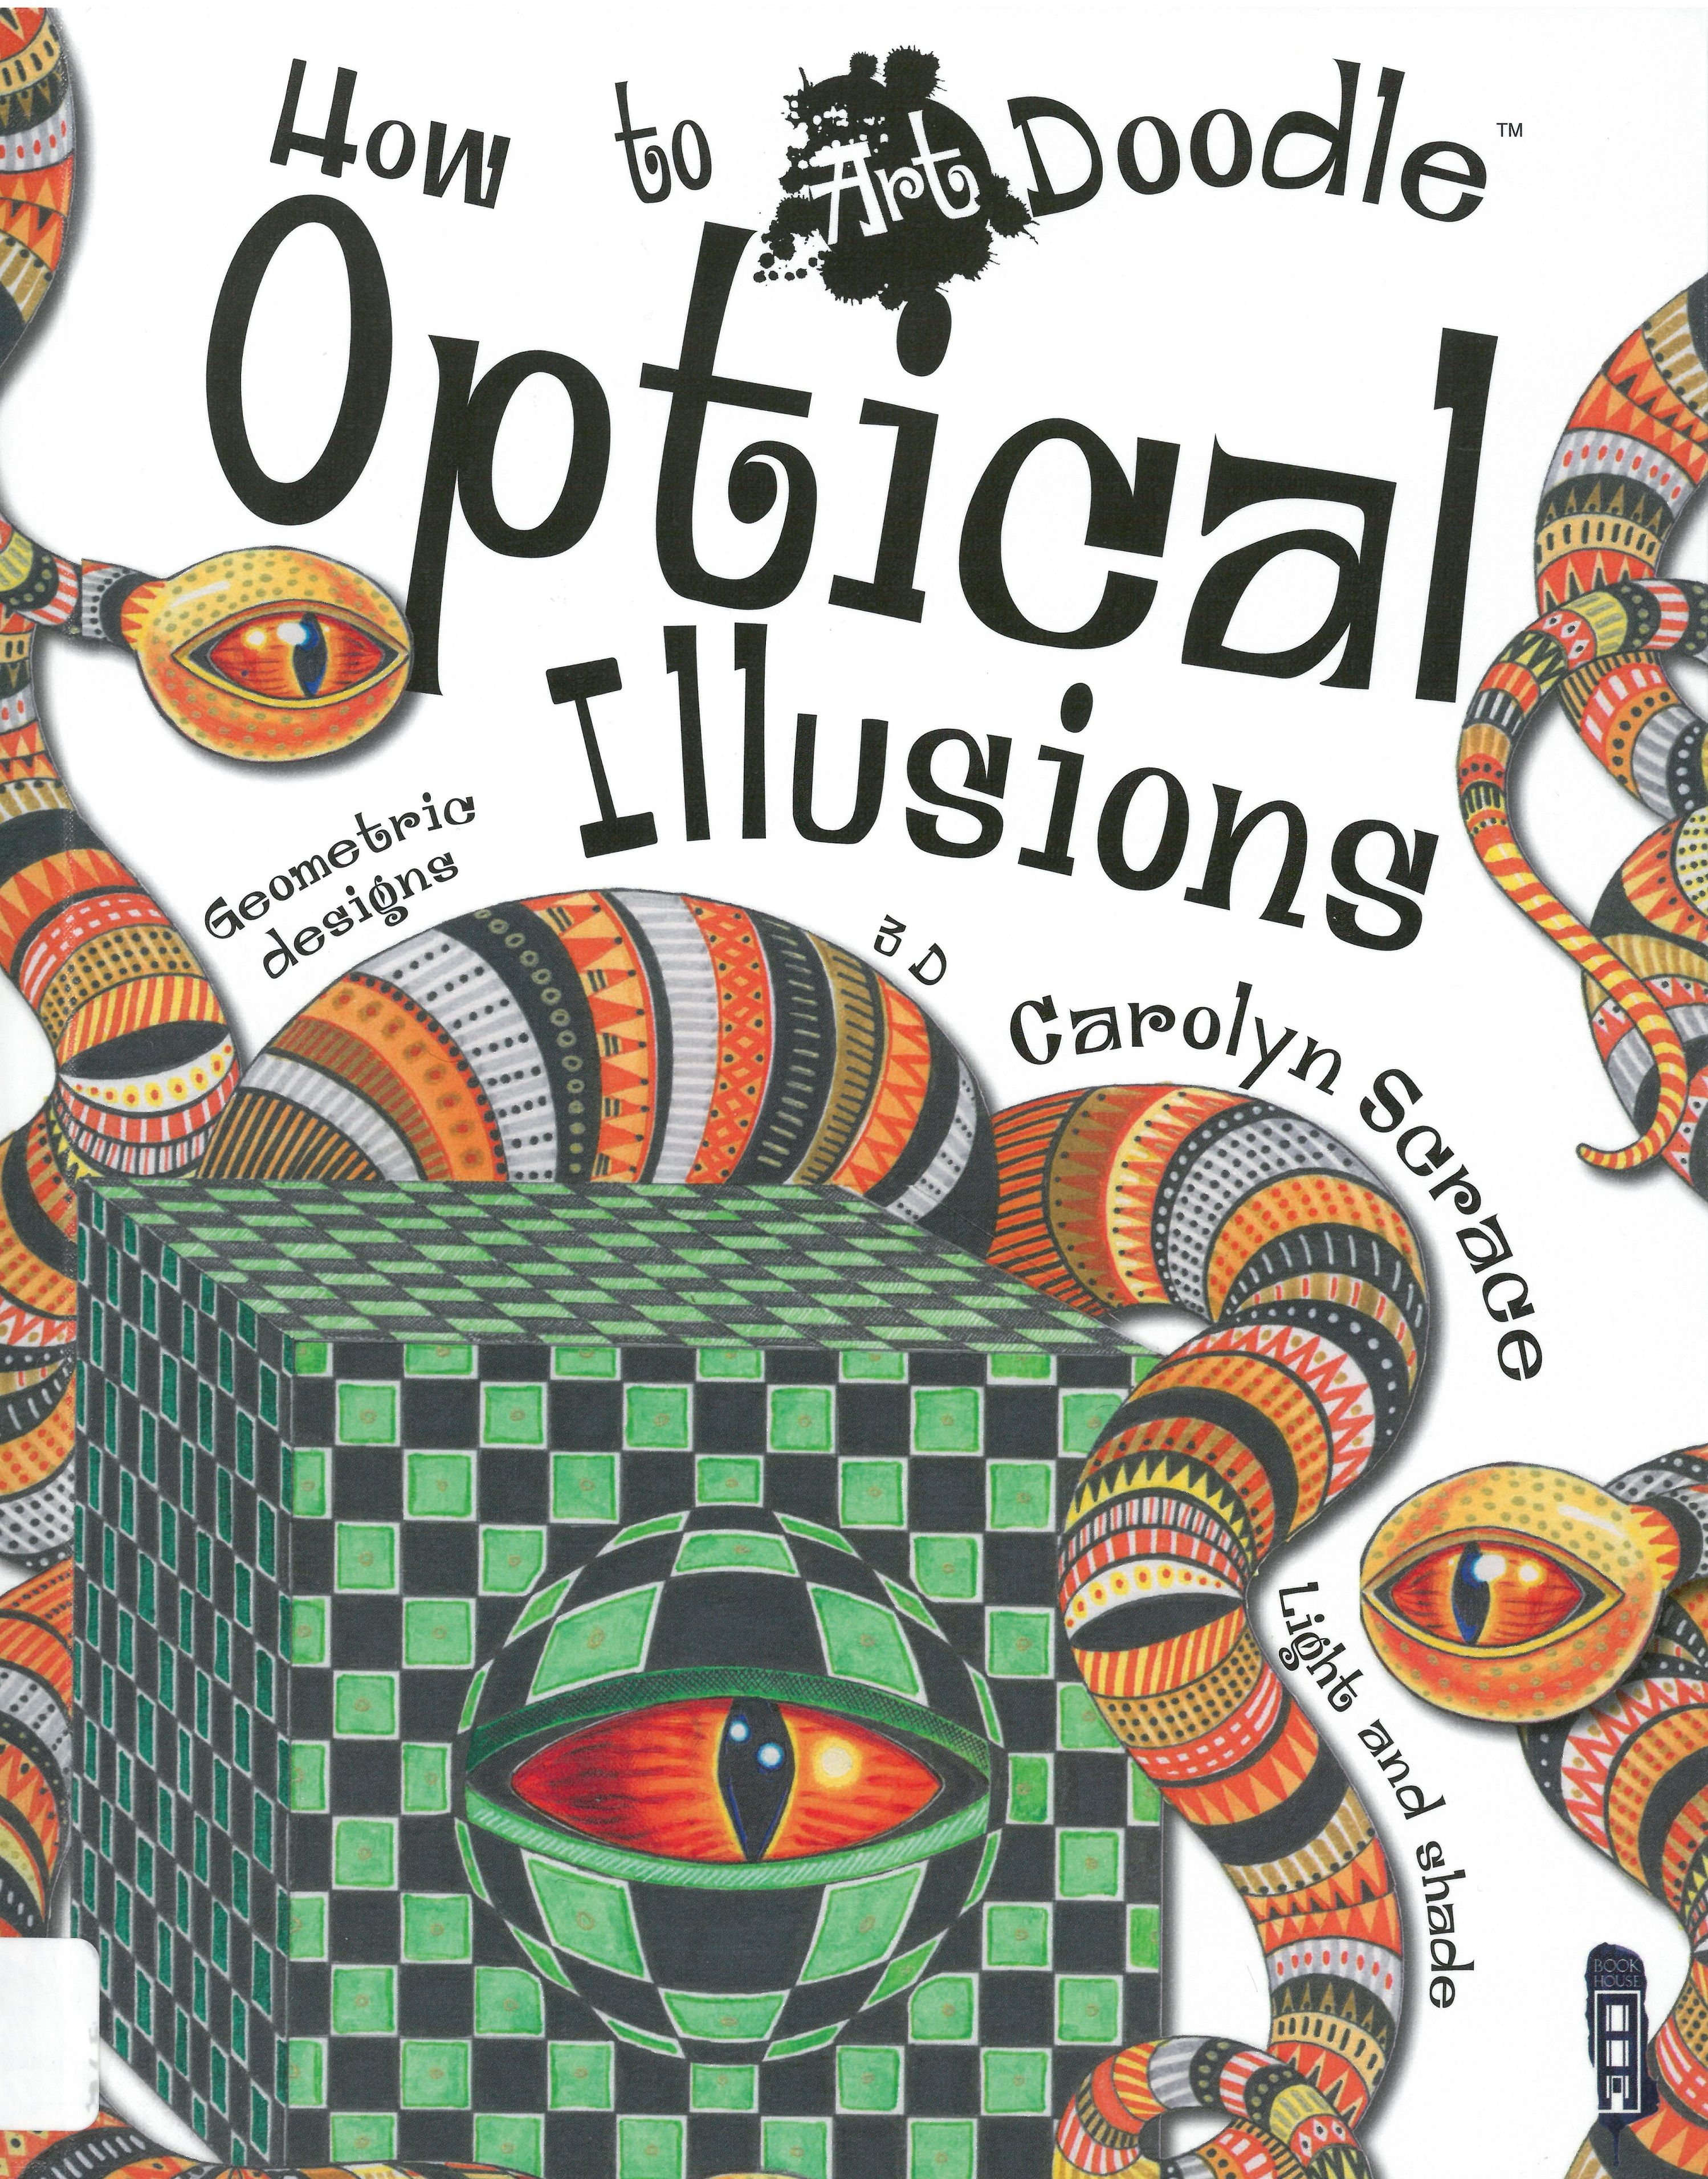 How To Art Doodle Optical Illusions Carolyn Scrace